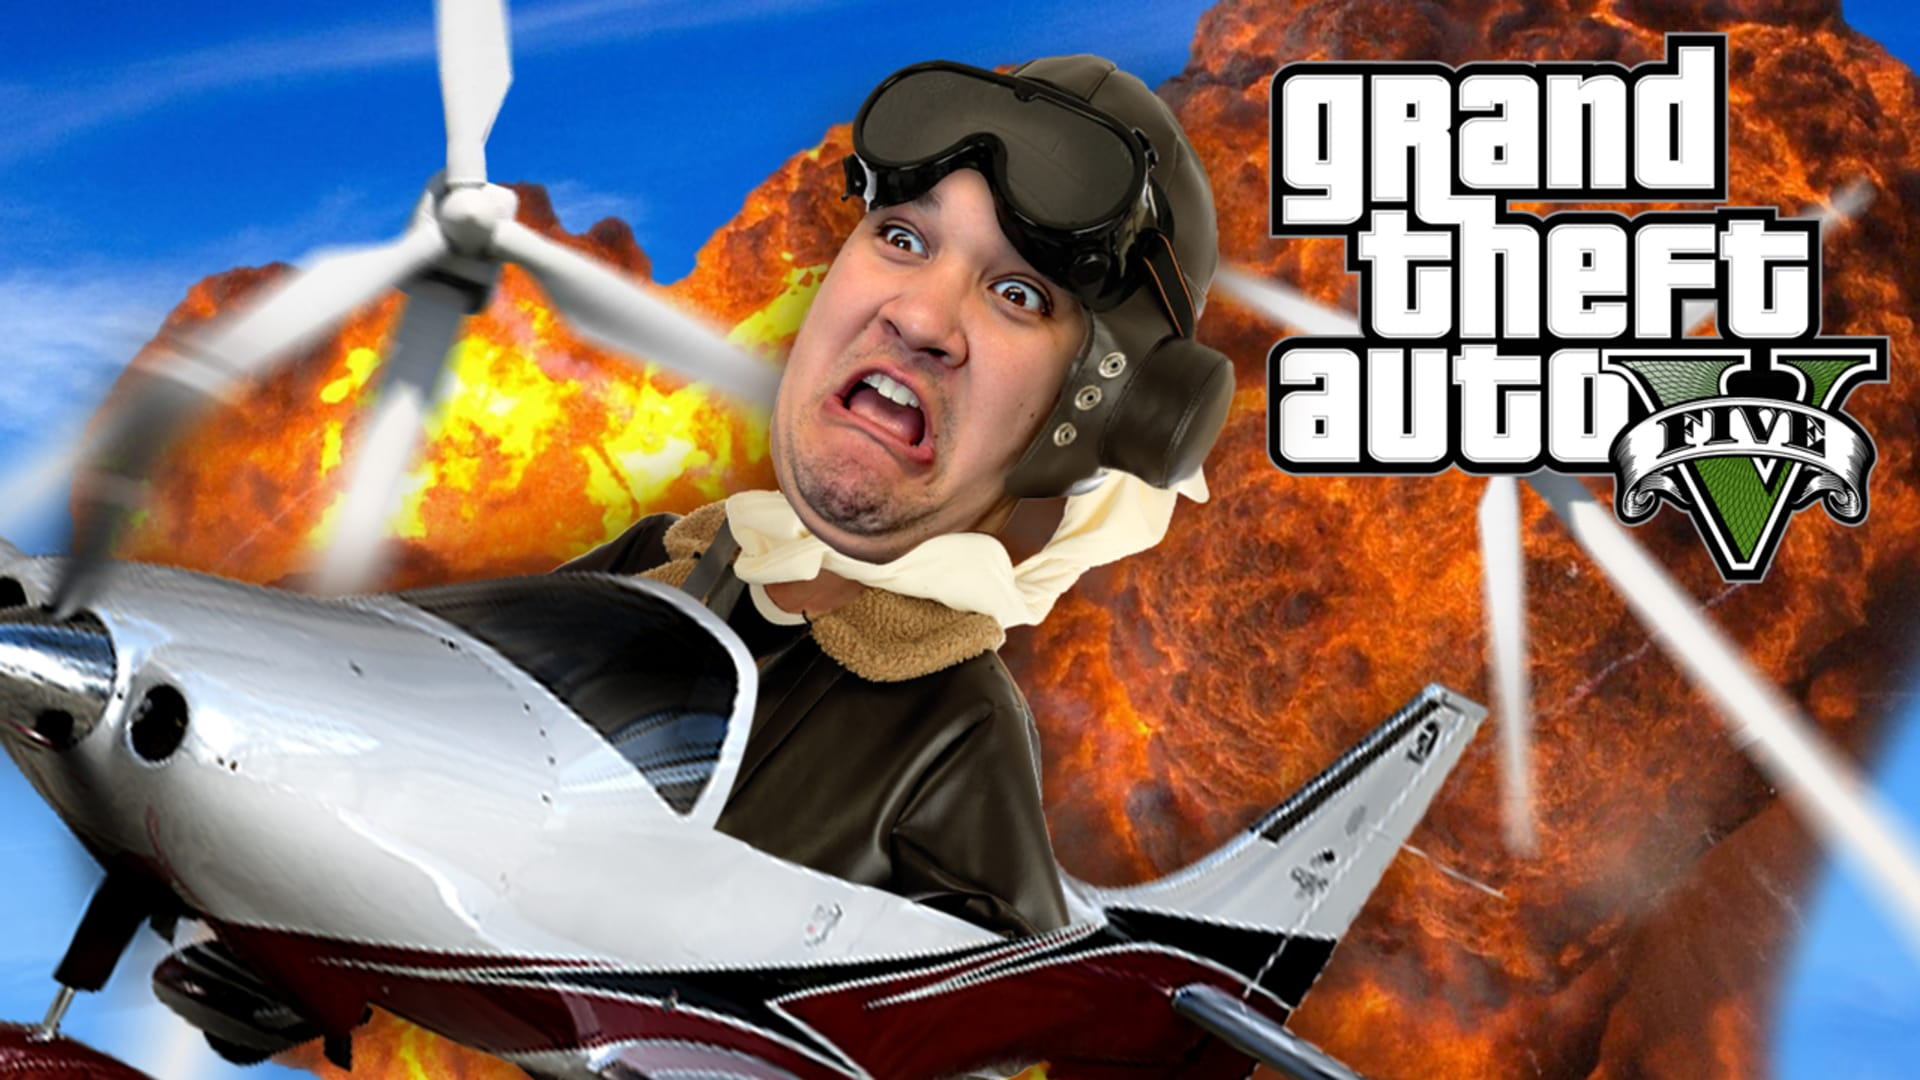 Blade Outrunners Gta 5 Stunt Race Funny Moments Rooster Teeth